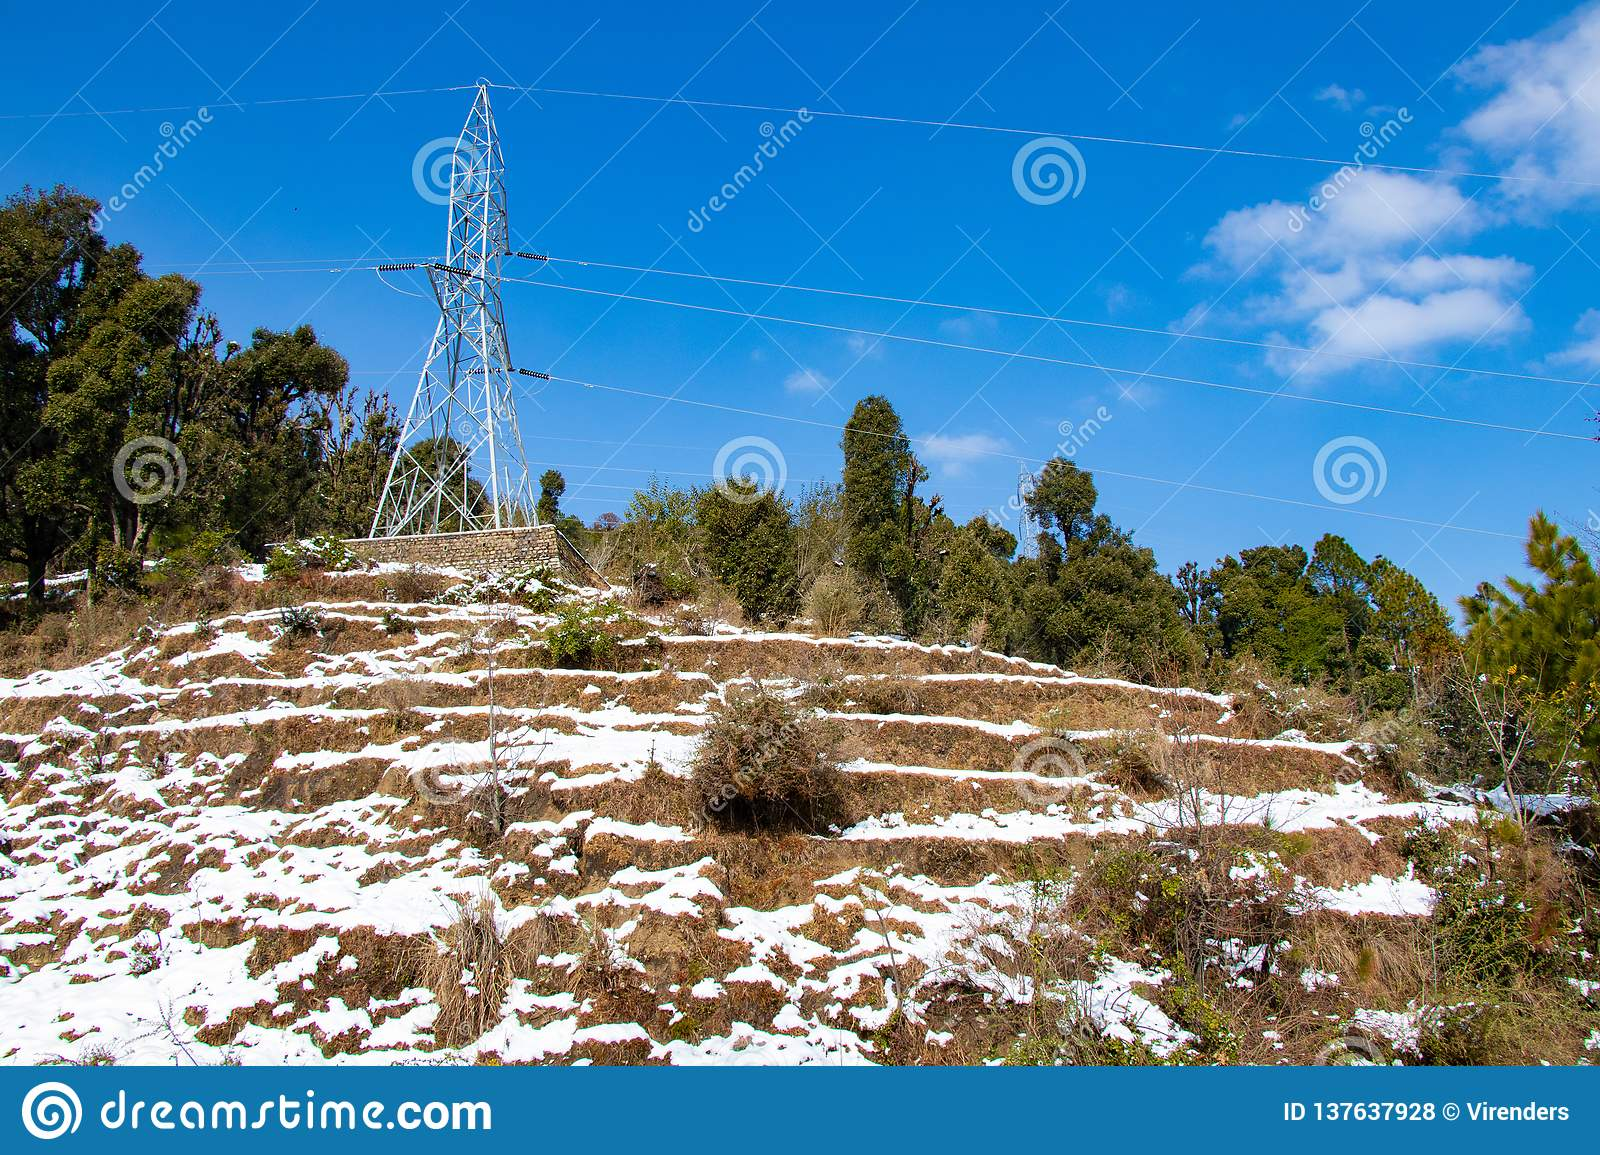 Electrical overhead transmission line